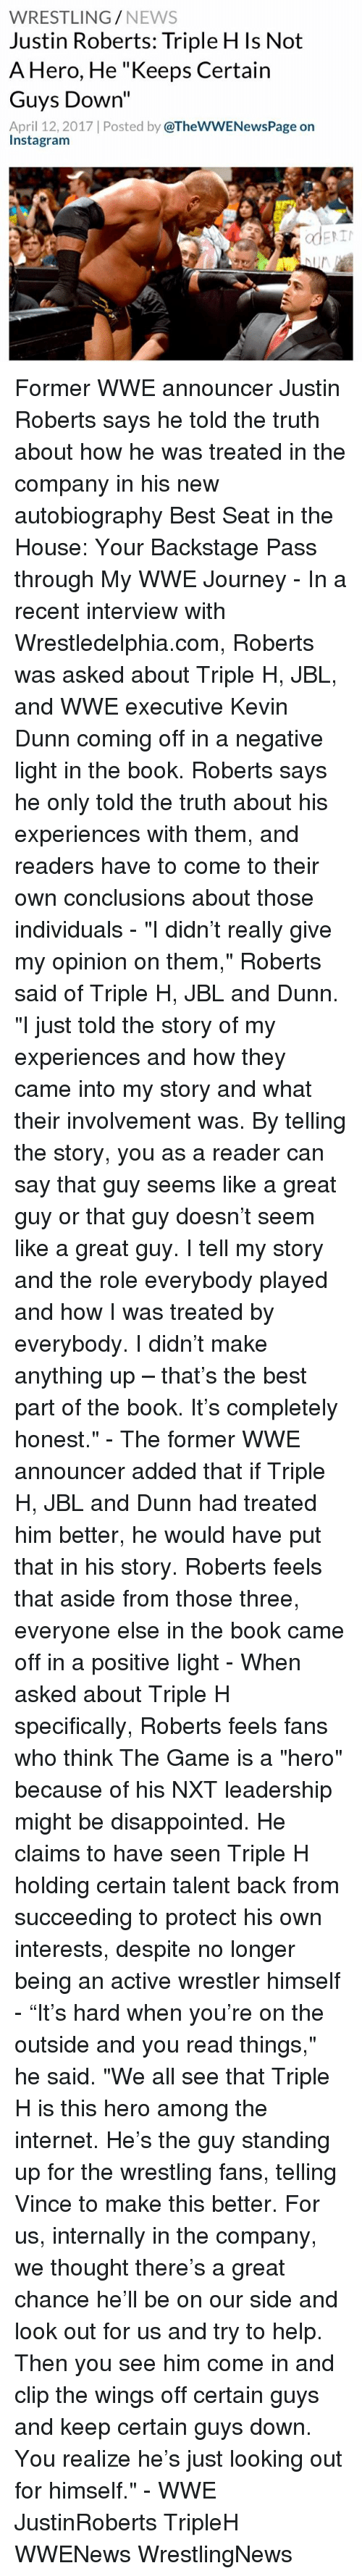 """Book It: WRESTLING  NEWS  Justin Roberts: Triple H Is Not  A Hero, He """"Keeps Certain  Guys Down""""  April 12, 2017 Posted by  @TheWWENewsPage on  Instagram  adERIN Former WWE announcer Justin Roberts says he told the truth about how he was treated in the company in his new autobiography Best Seat in the House: Your Backstage Pass through My WWE Journey - In a recent interview with Wrestledelphia.com, Roberts was asked about Triple H, JBL, and WWE executive Kevin Dunn coming off in a negative light in the book. Roberts says he only told the truth about his experiences with them, and readers have to come to their own conclusions about those individuals - """"I didn't really give my opinion on them,"""" Roberts said of Triple H, JBL and Dunn. """"I just told the story of my experiences and how they came into my story and what their involvement was. By telling the story, you as a reader can say that guy seems like a great guy or that guy doesn't seem like a great guy. I tell my story and the role everybody played and how I was treated by everybody. I didn't make anything up – that's the best part of the book. It's completely honest."""" - The former WWE announcer added that if Triple H, JBL and Dunn had treated him better, he would have put that in his story. Roberts feels that aside from those three, everyone else in the book came off in a positive light - When asked about Triple H specifically, Roberts feels fans who think The Game is a """"hero"""" because of his NXT leadership might be disappointed. He claims to have seen Triple H holding certain talent back from succeeding to protect his own interests, despite no longer being an active wrestler himself - """"It's hard when you're on the outside and you read things,"""" he said. """"We all see that Triple H is this hero among the internet. He's the guy standing up for the wrestling fans, telling Vince to make this better. For us, internally in the company, we thought there's a great chance he'll be on our side and look out for us and try to hel"""